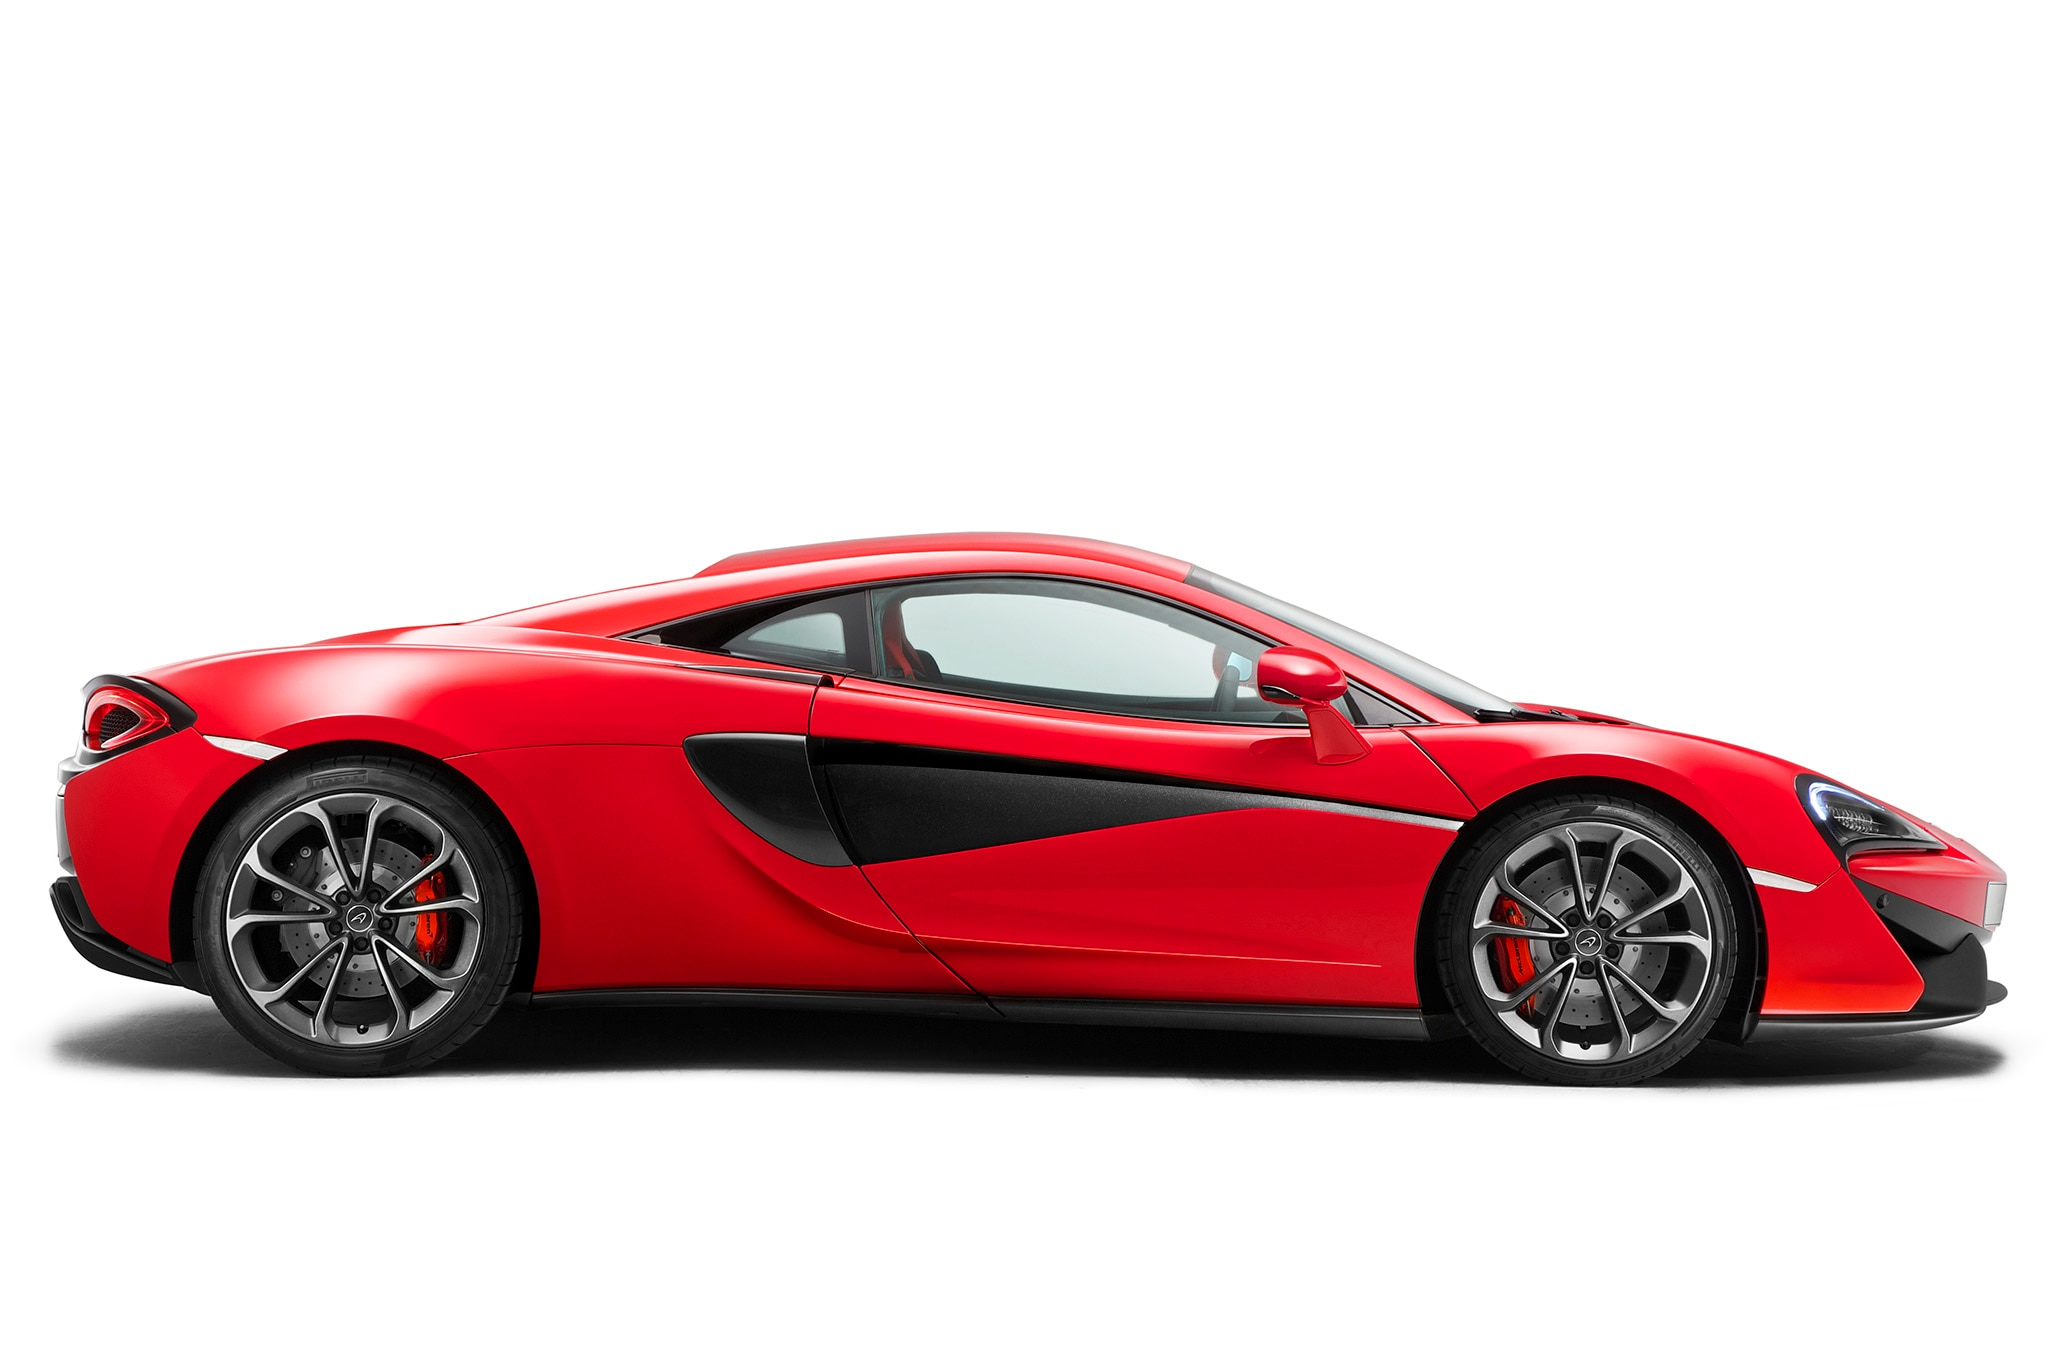 2016 McLaren 540C Is A More Affordable 570S